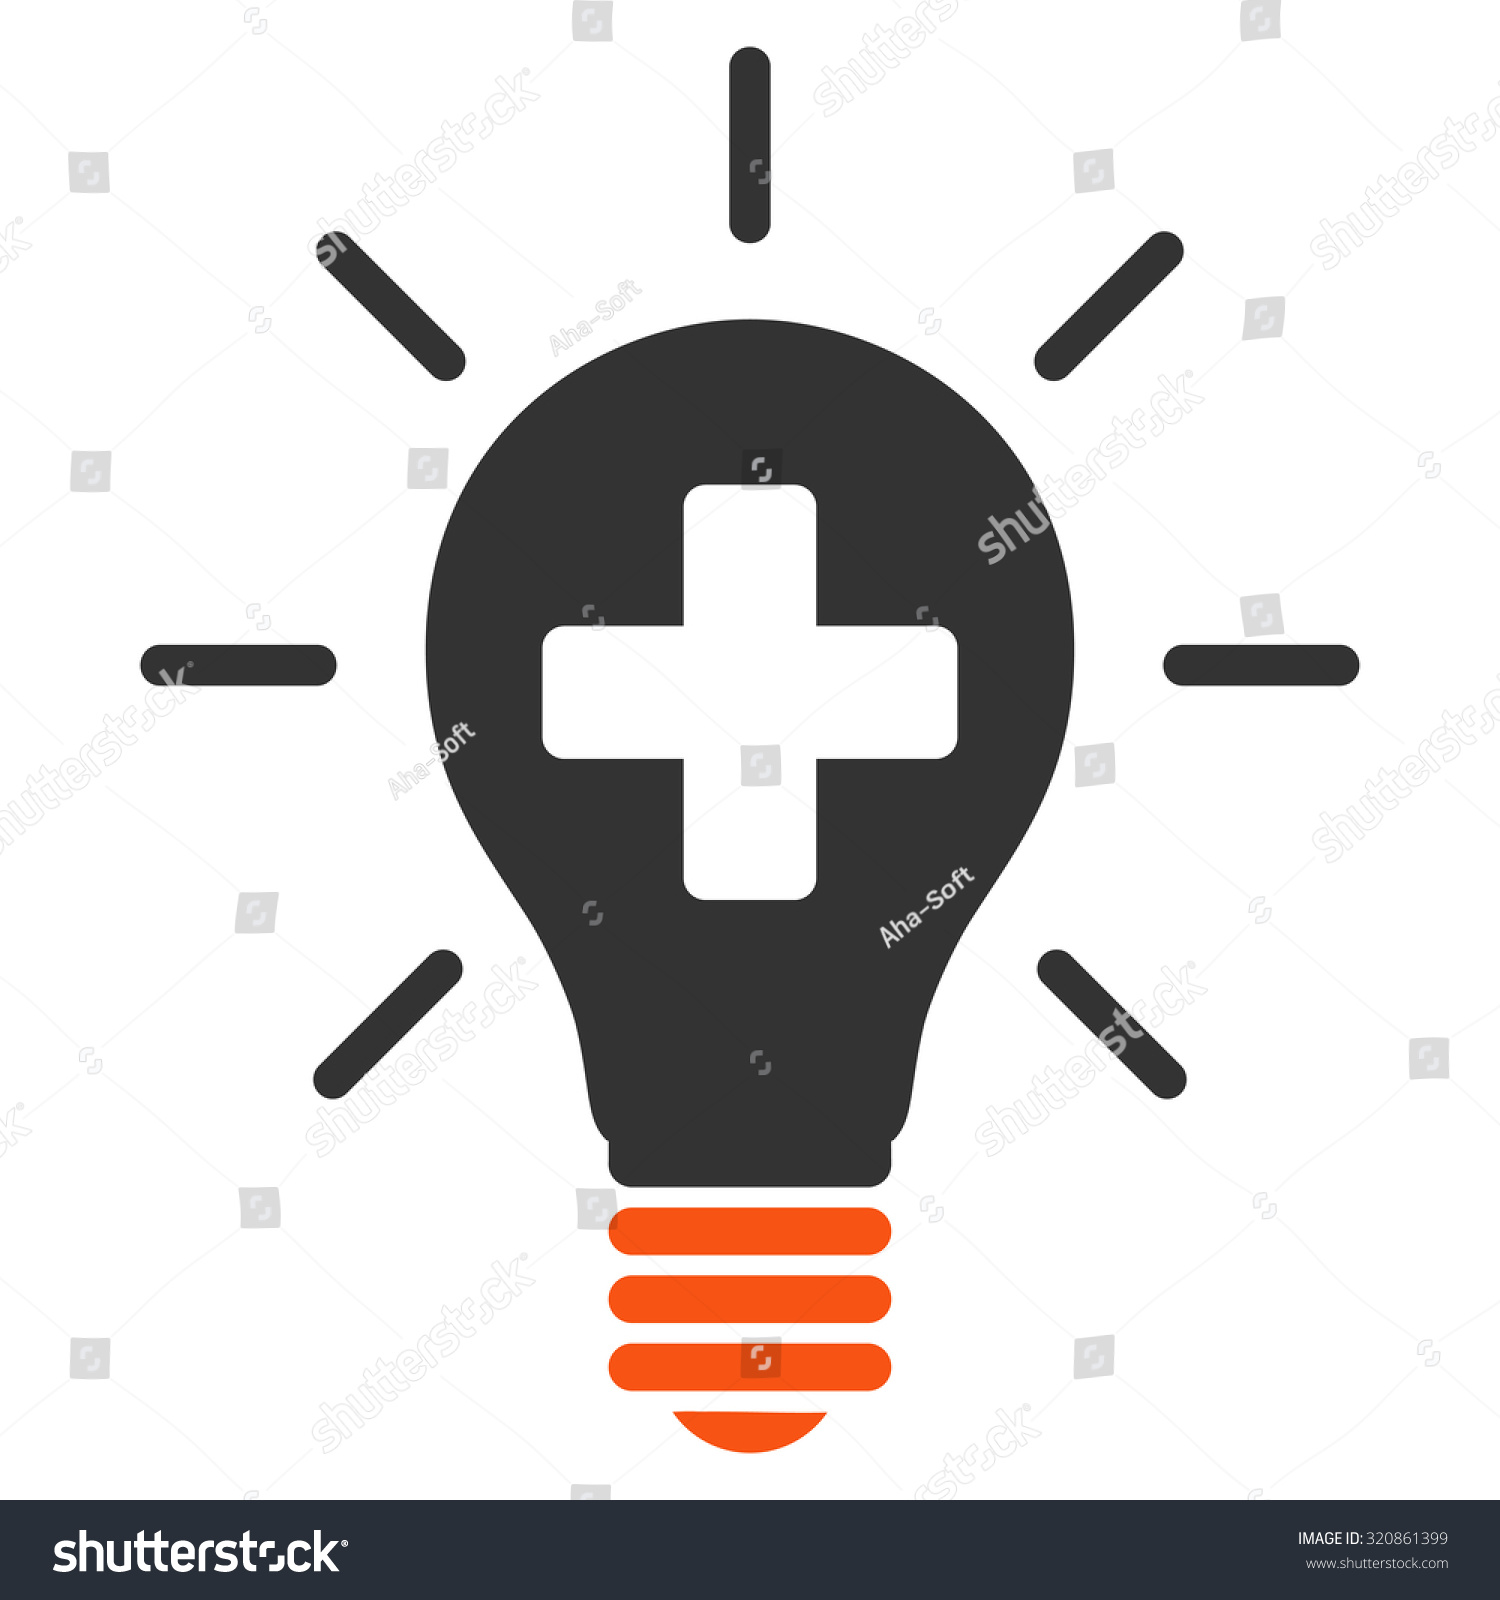 Medical Electric Lamp Glyph Icon Style Stock Illustration 320861399 ...